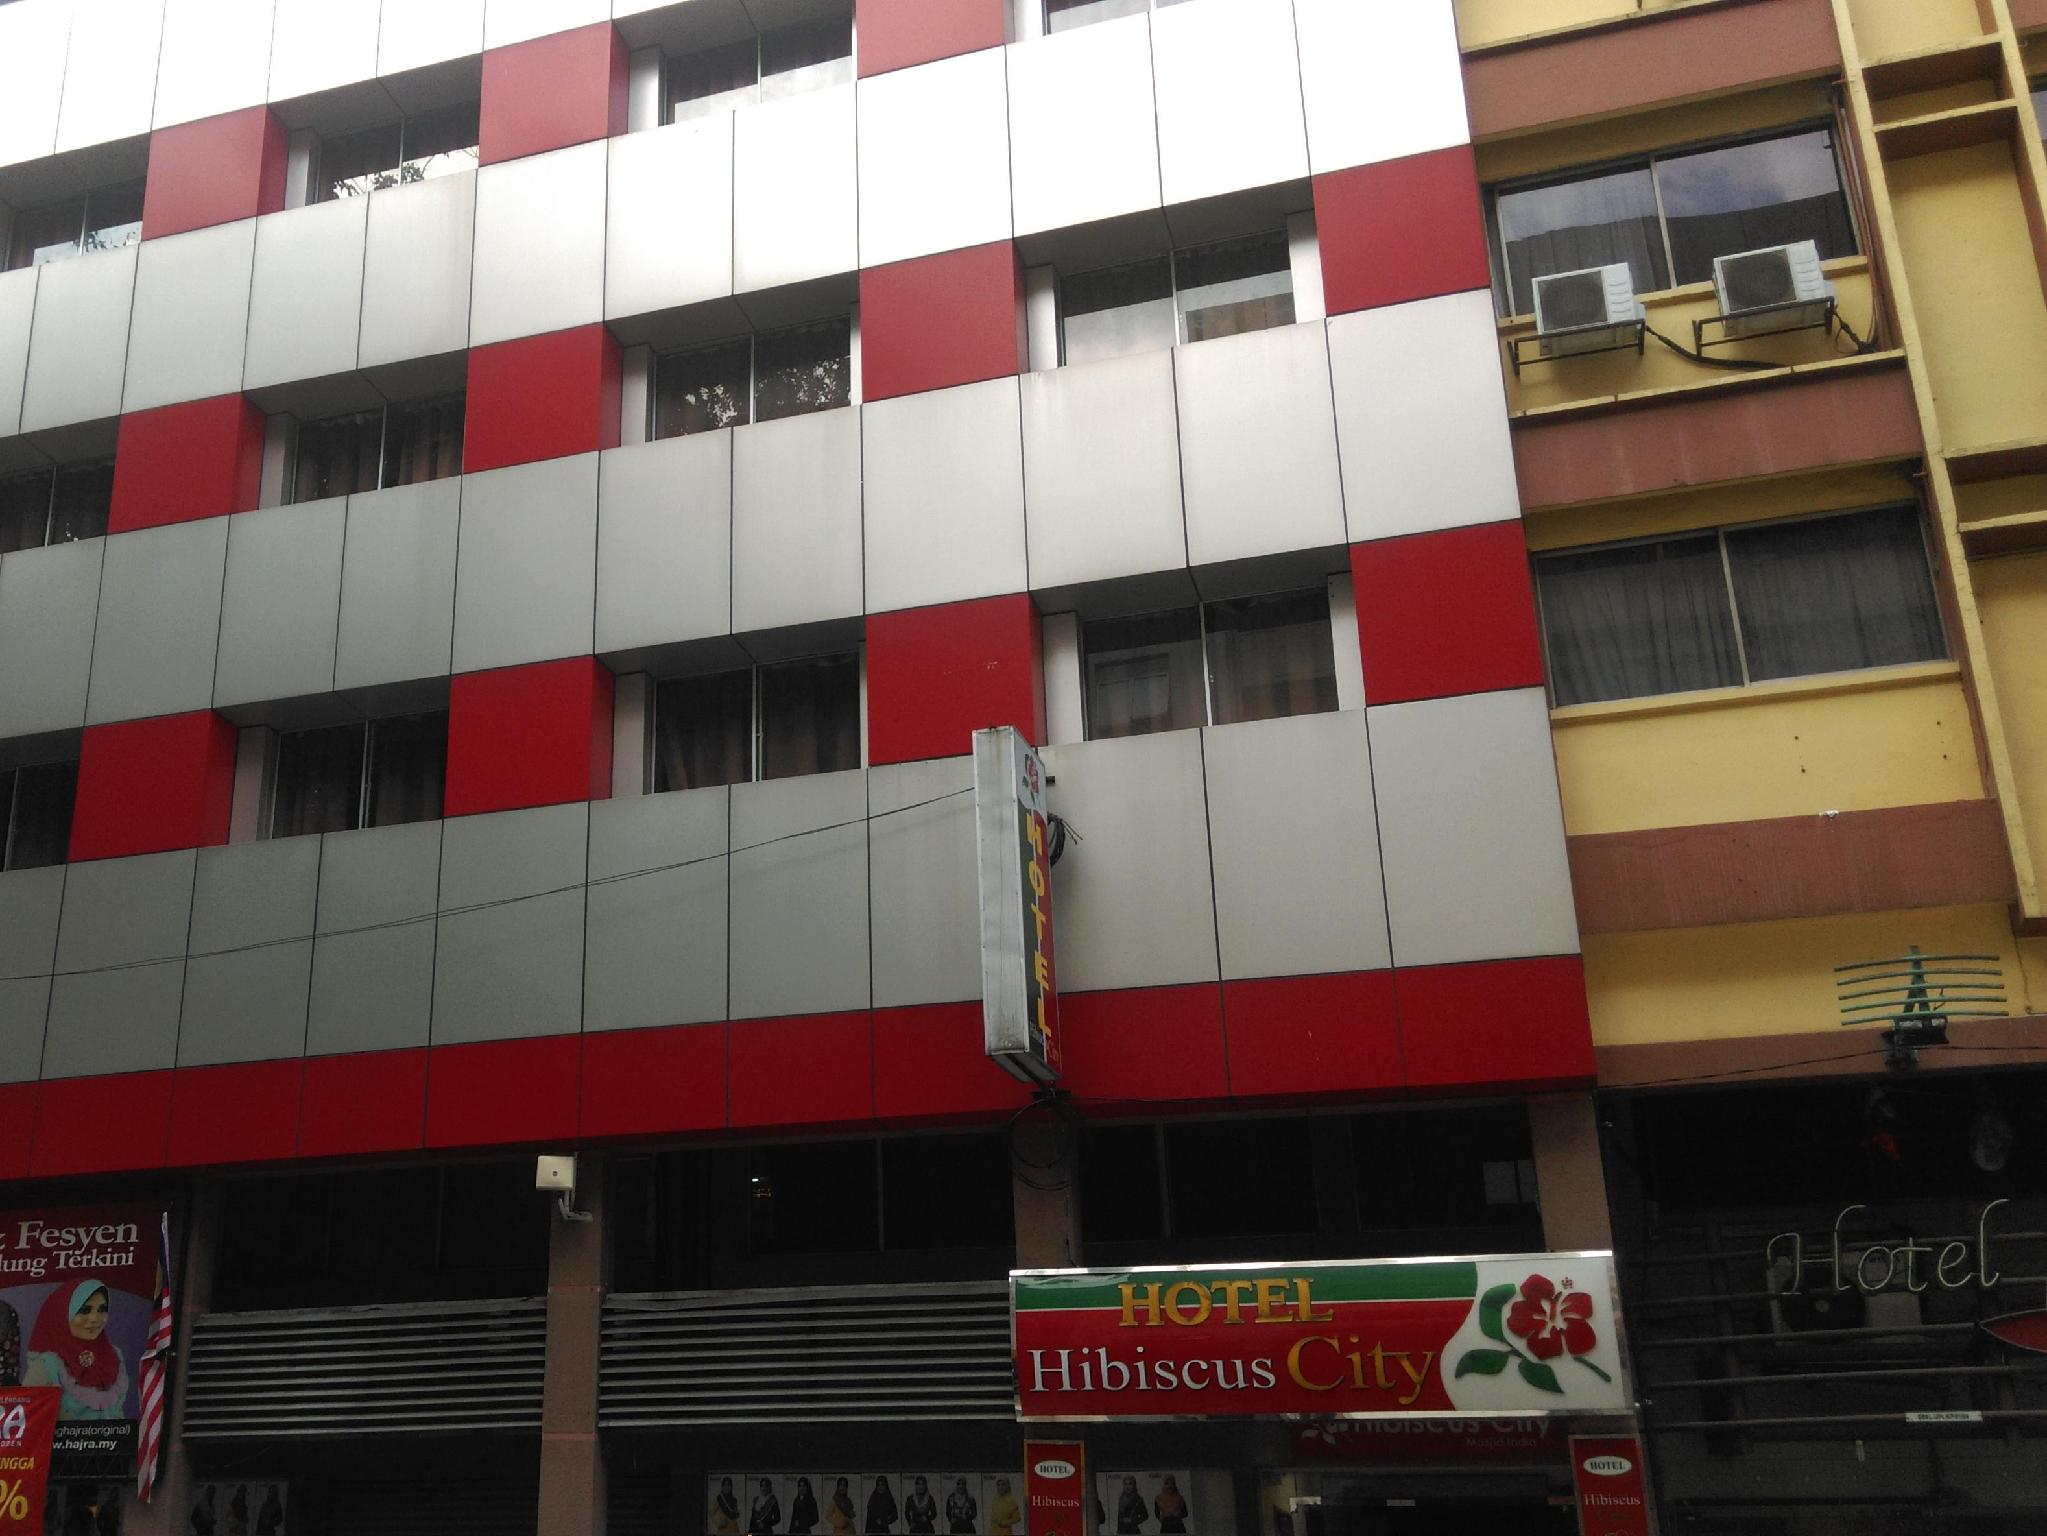 Hotel Hibiscus City